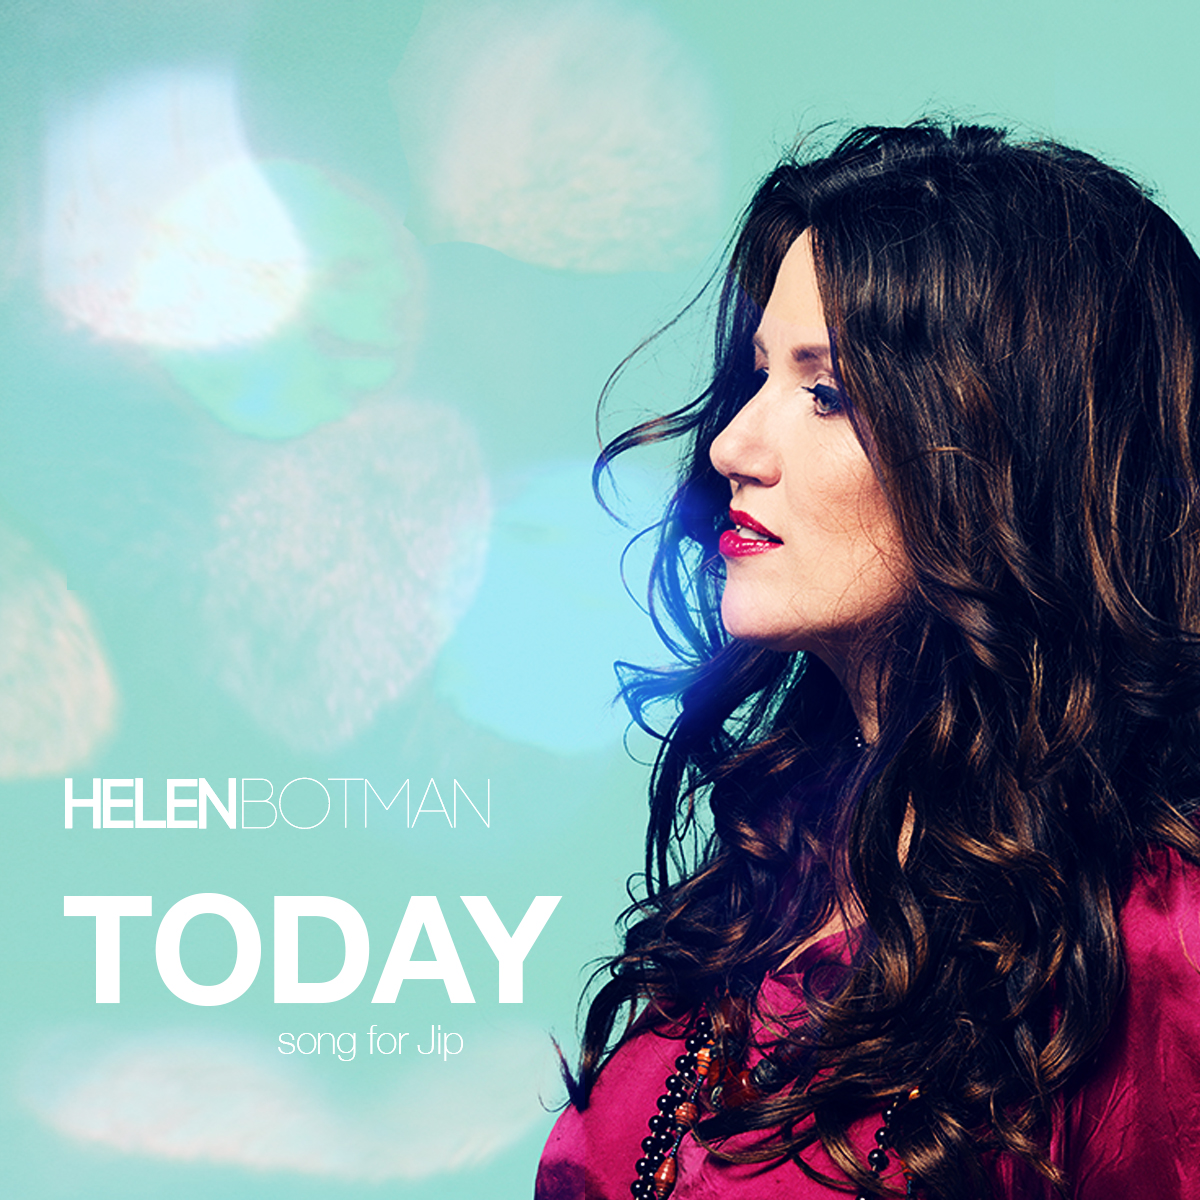 Today (single download)